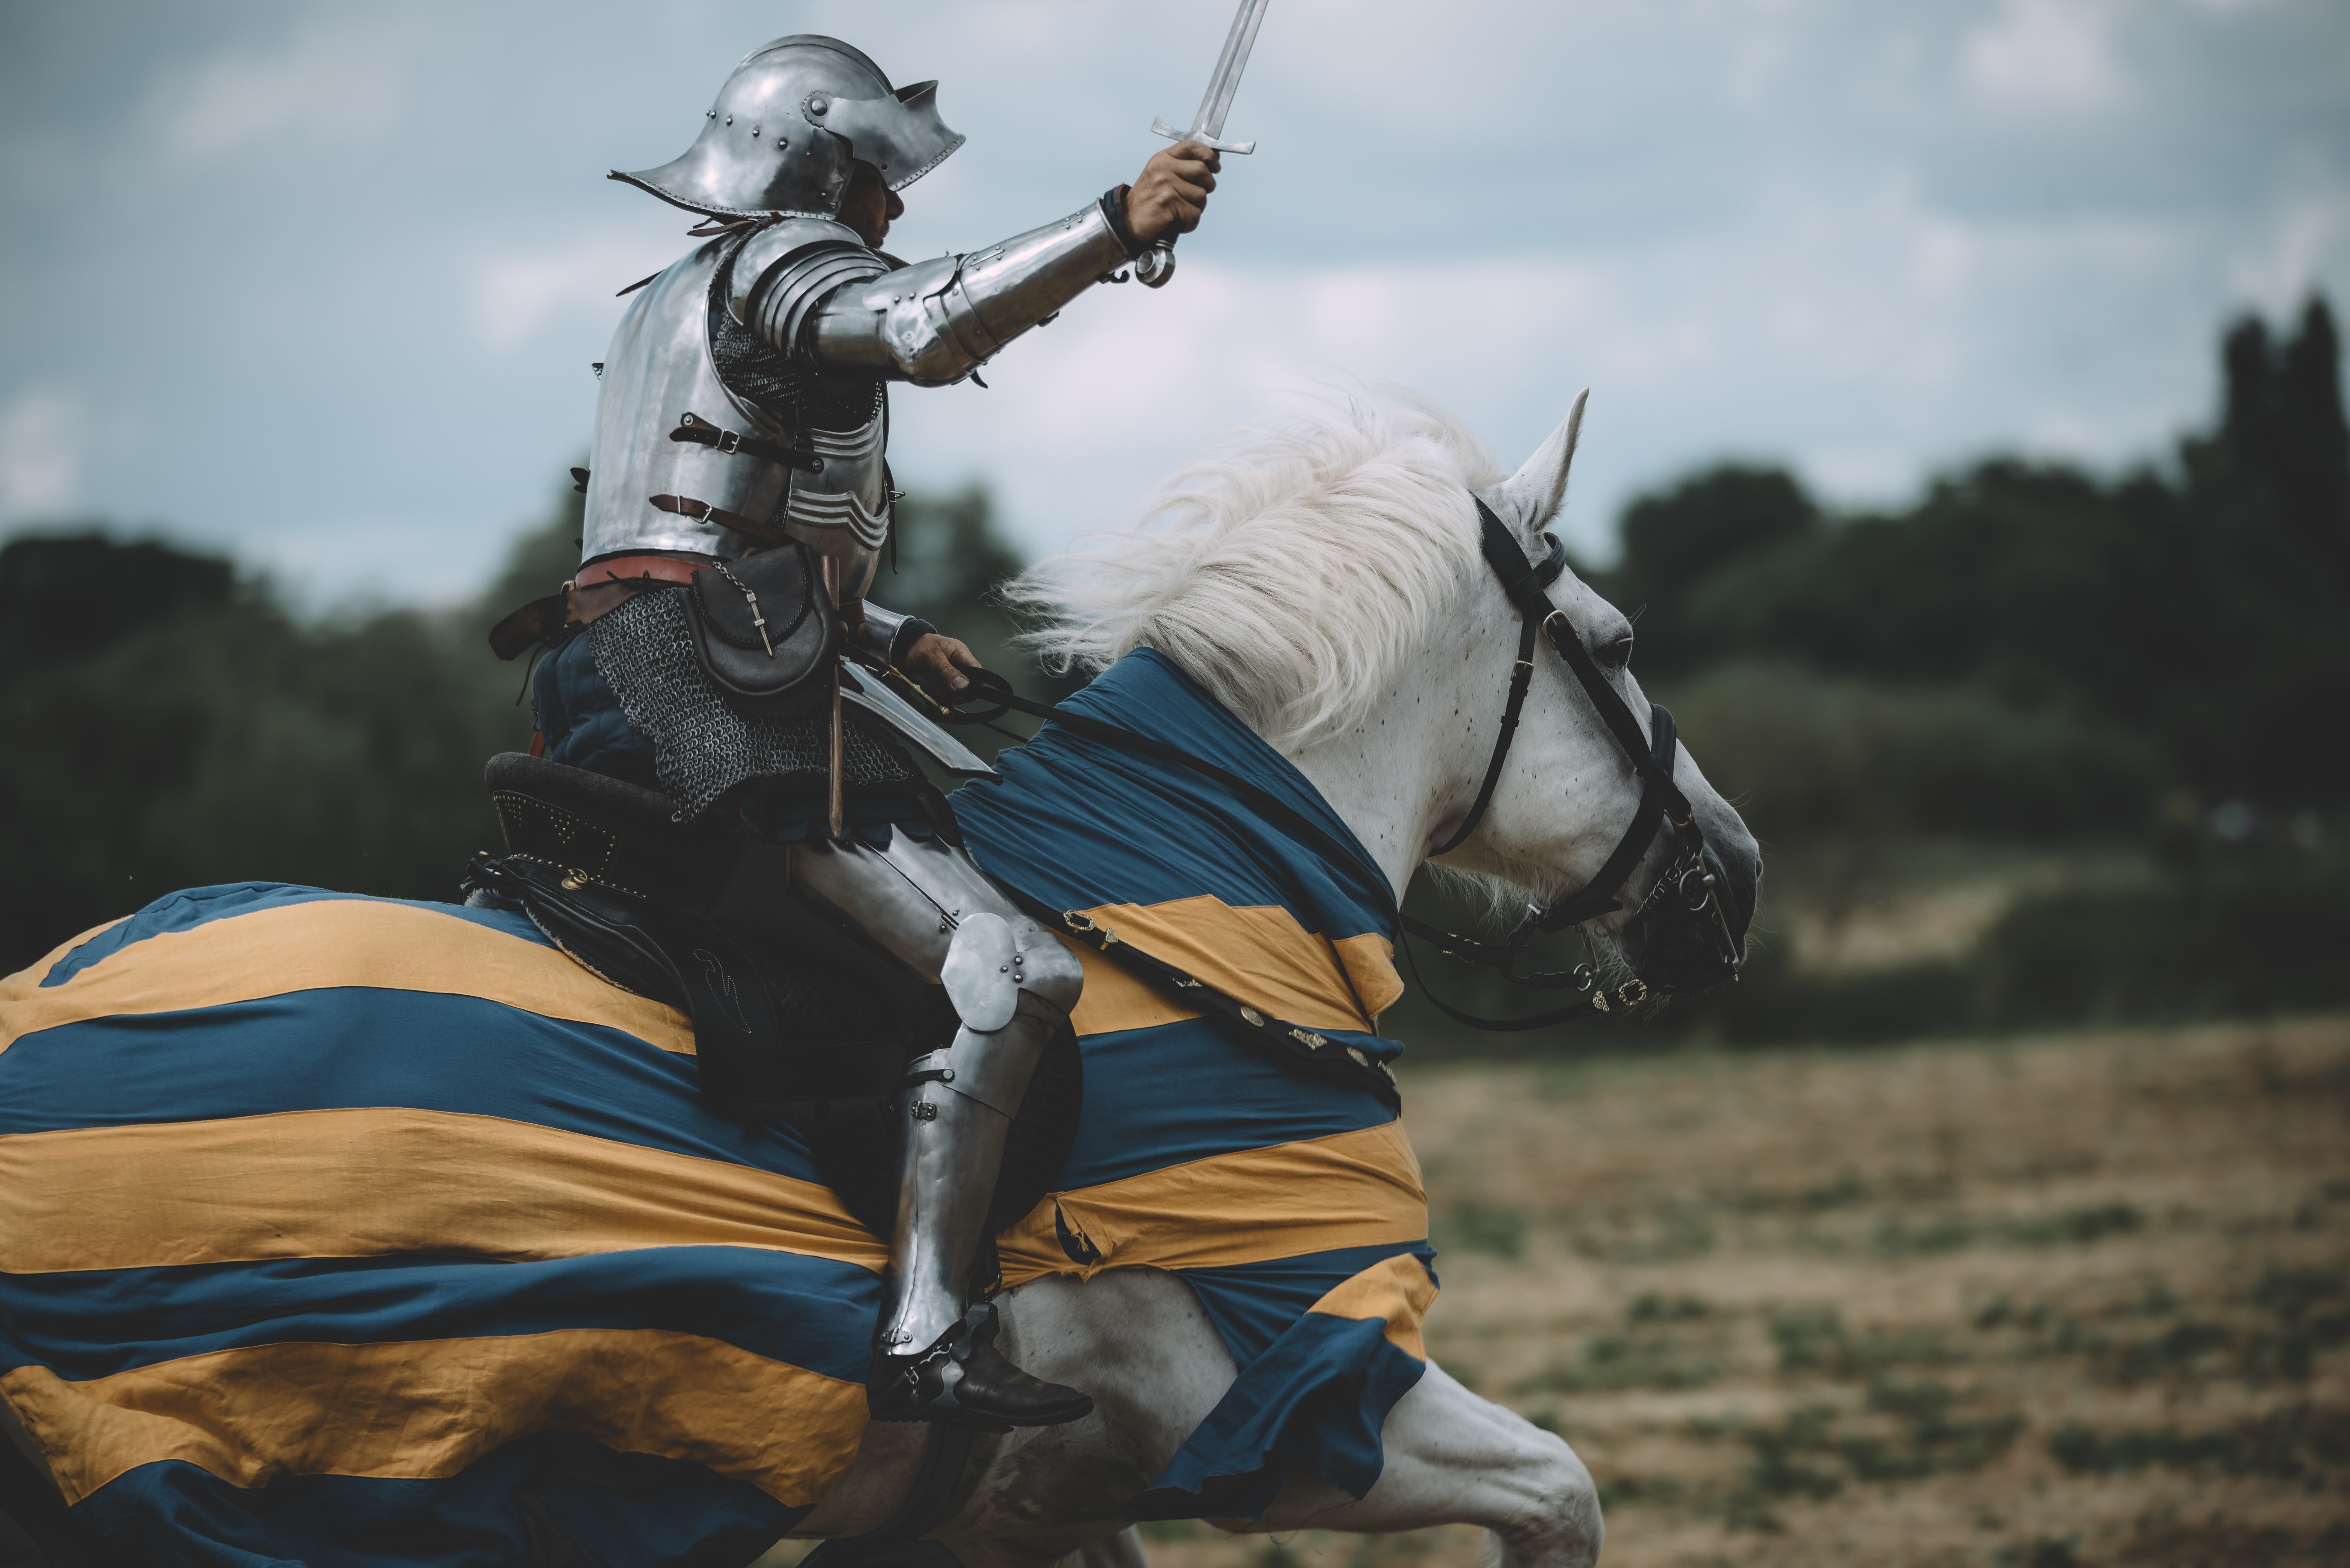 knight riding on horse